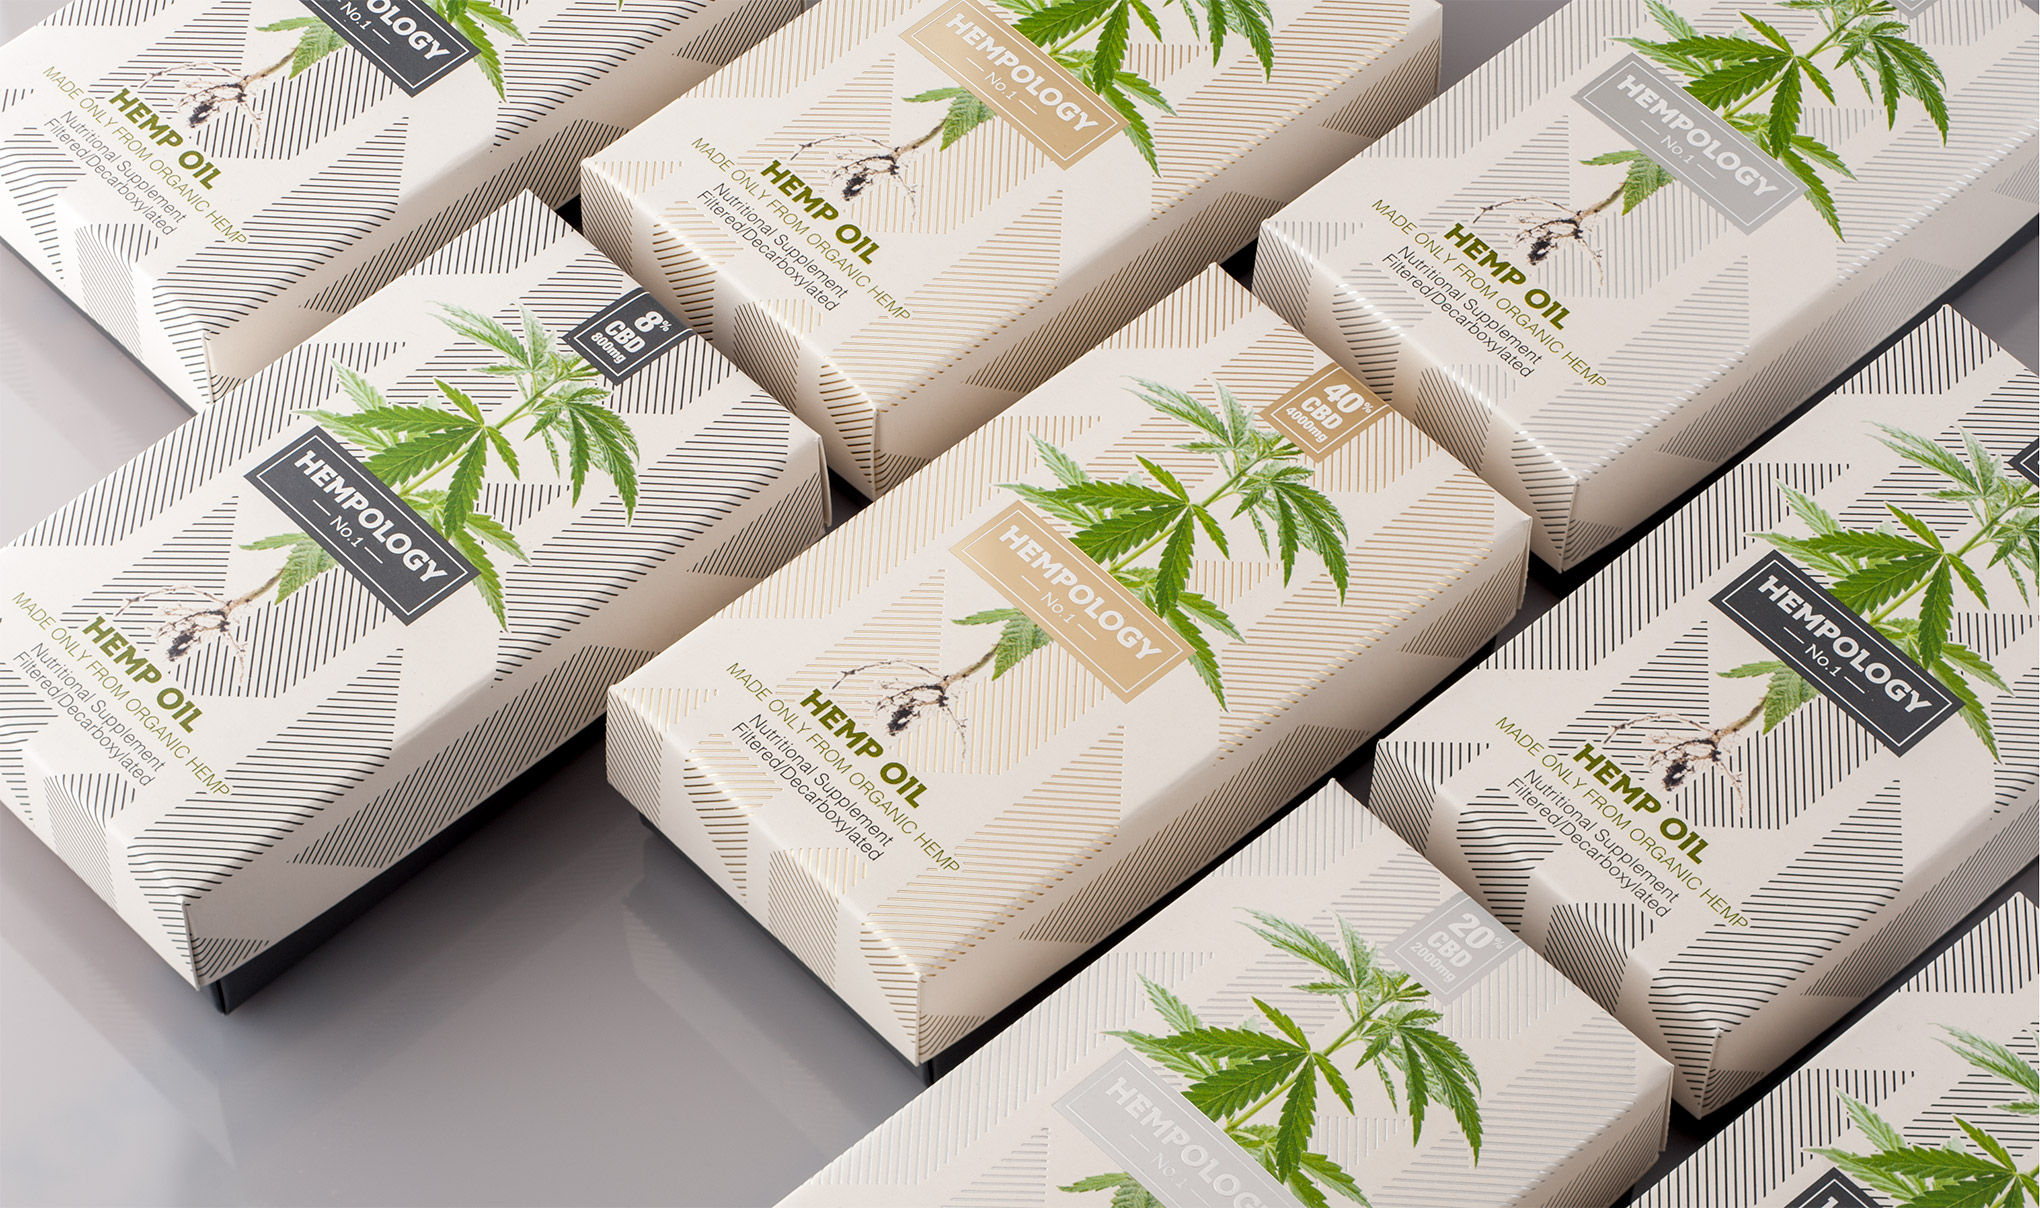 Hempology CBD Oil Packaging Range Line up. Designed by Flipflop Design Agency, Brighton.